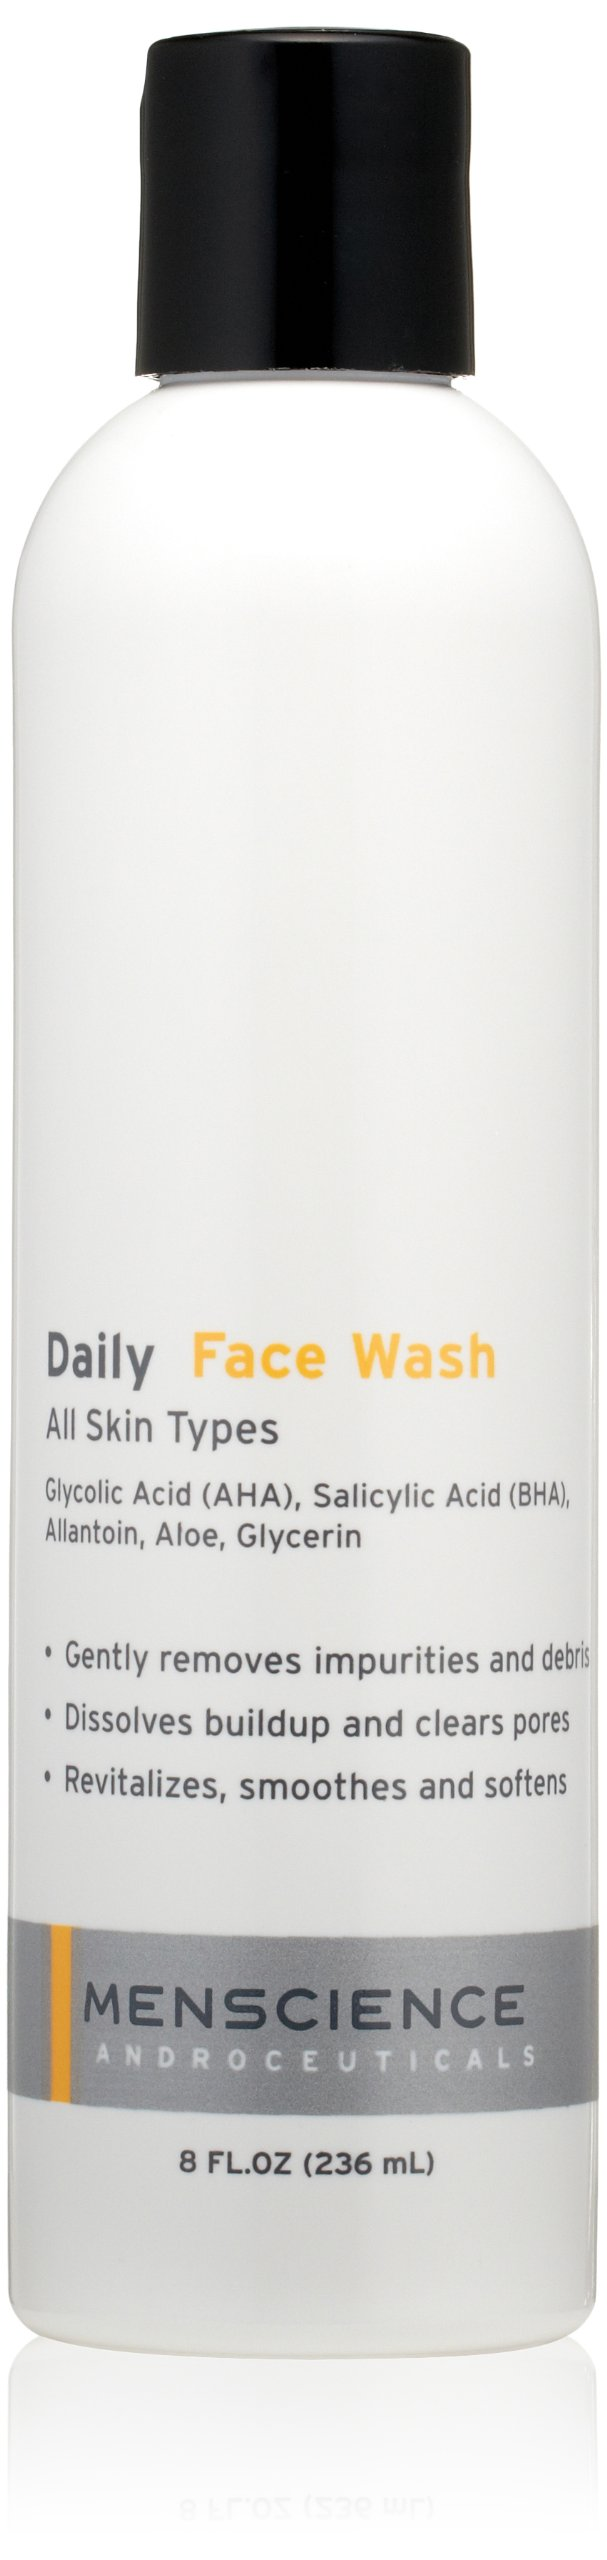 MenScience Androceuticals Daily Face Wash, 8 fl. oz.